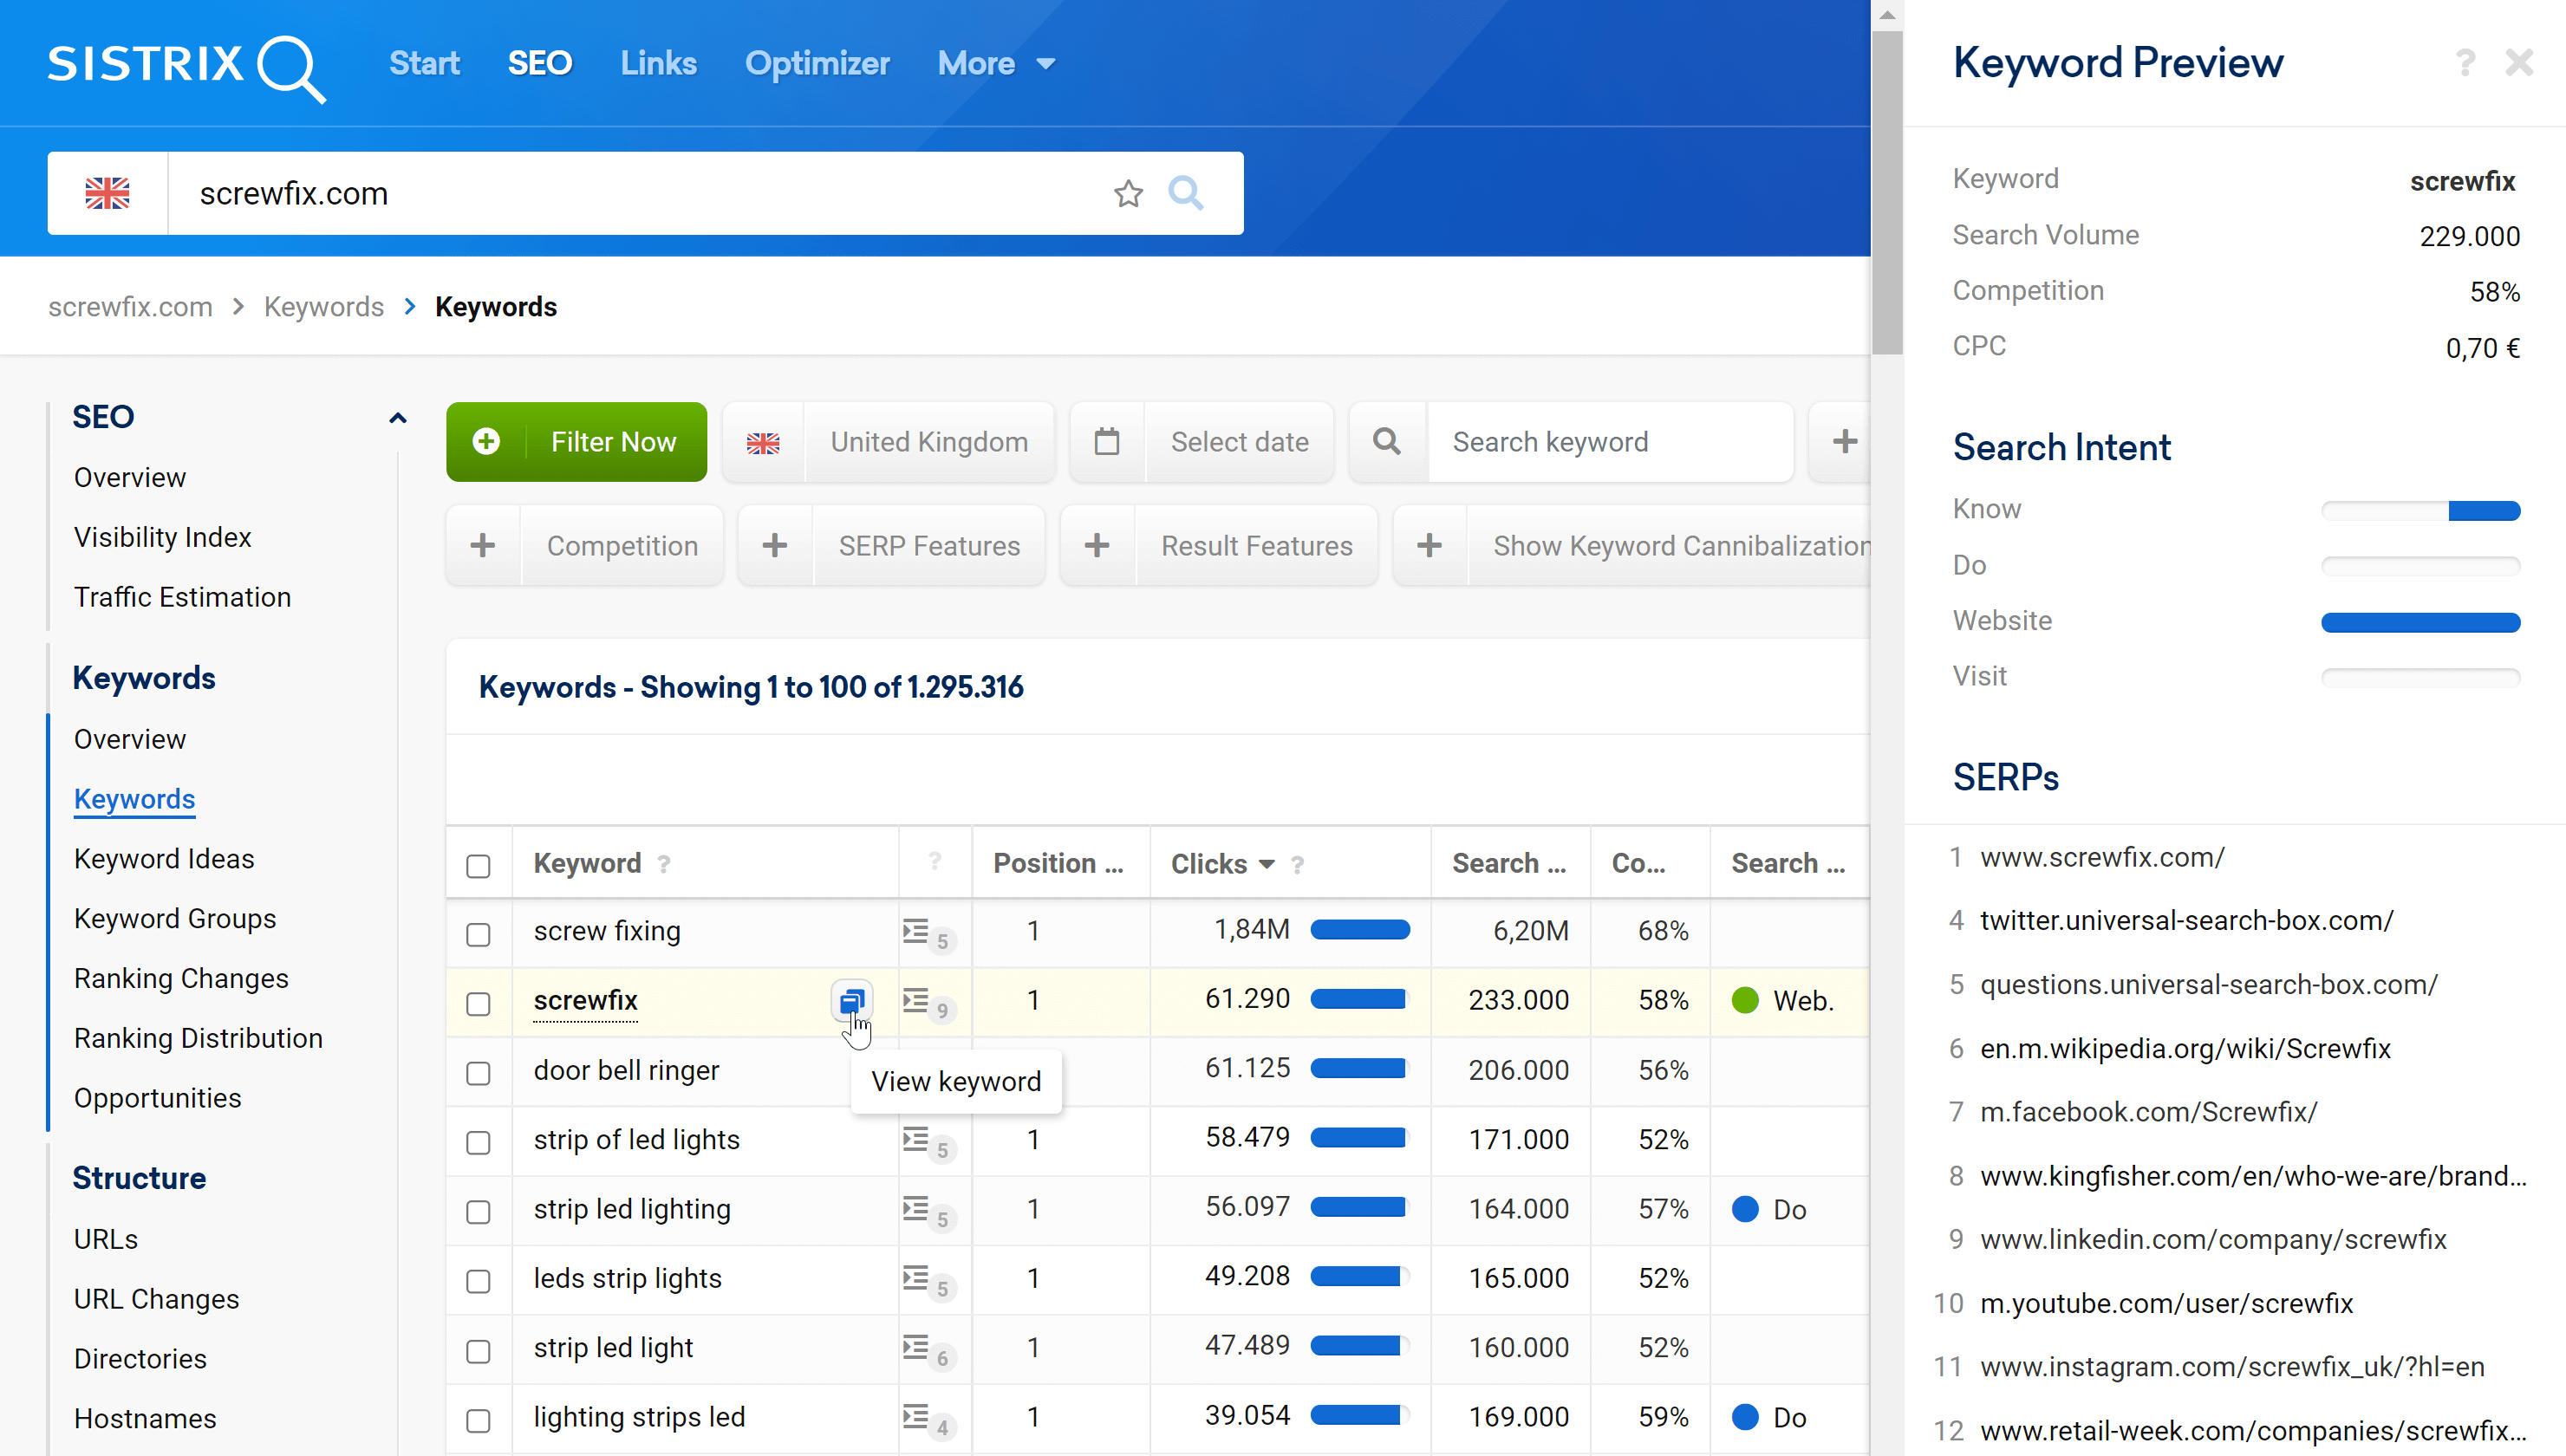 Keyword preview in the SISTRIX Toolbox